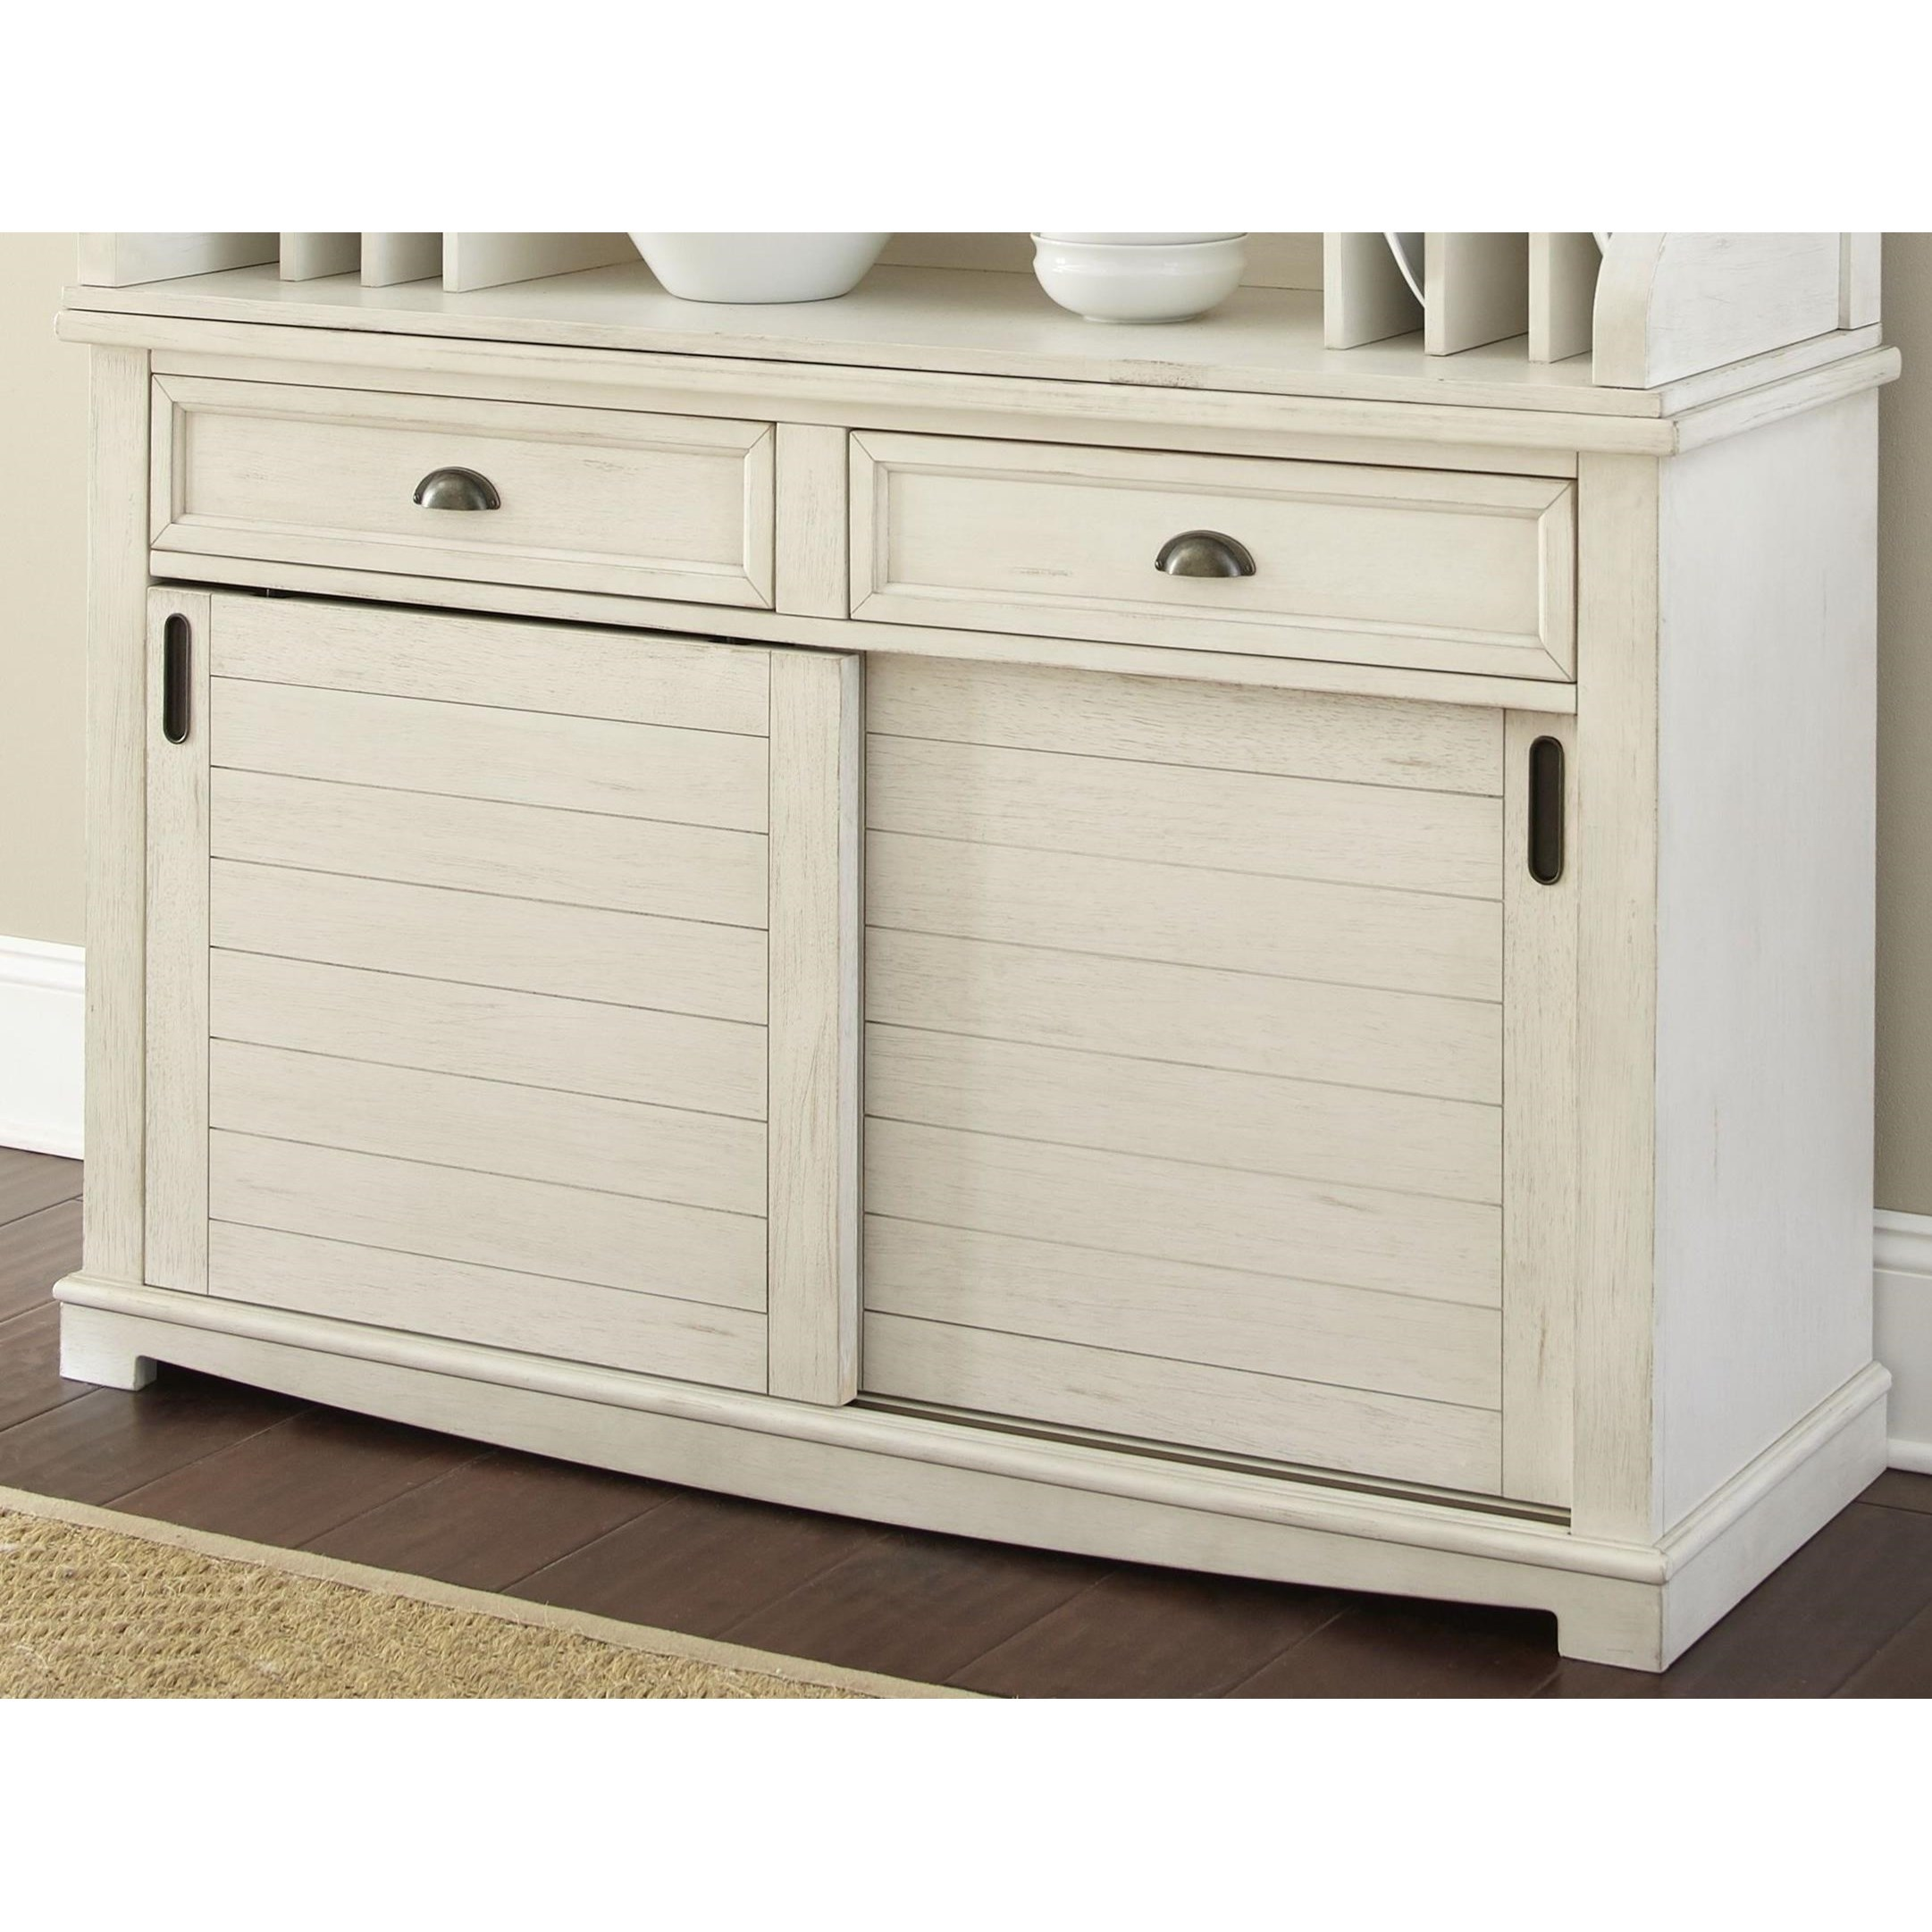 Cayla Buffet by Steve Silver at Walker's Furniture